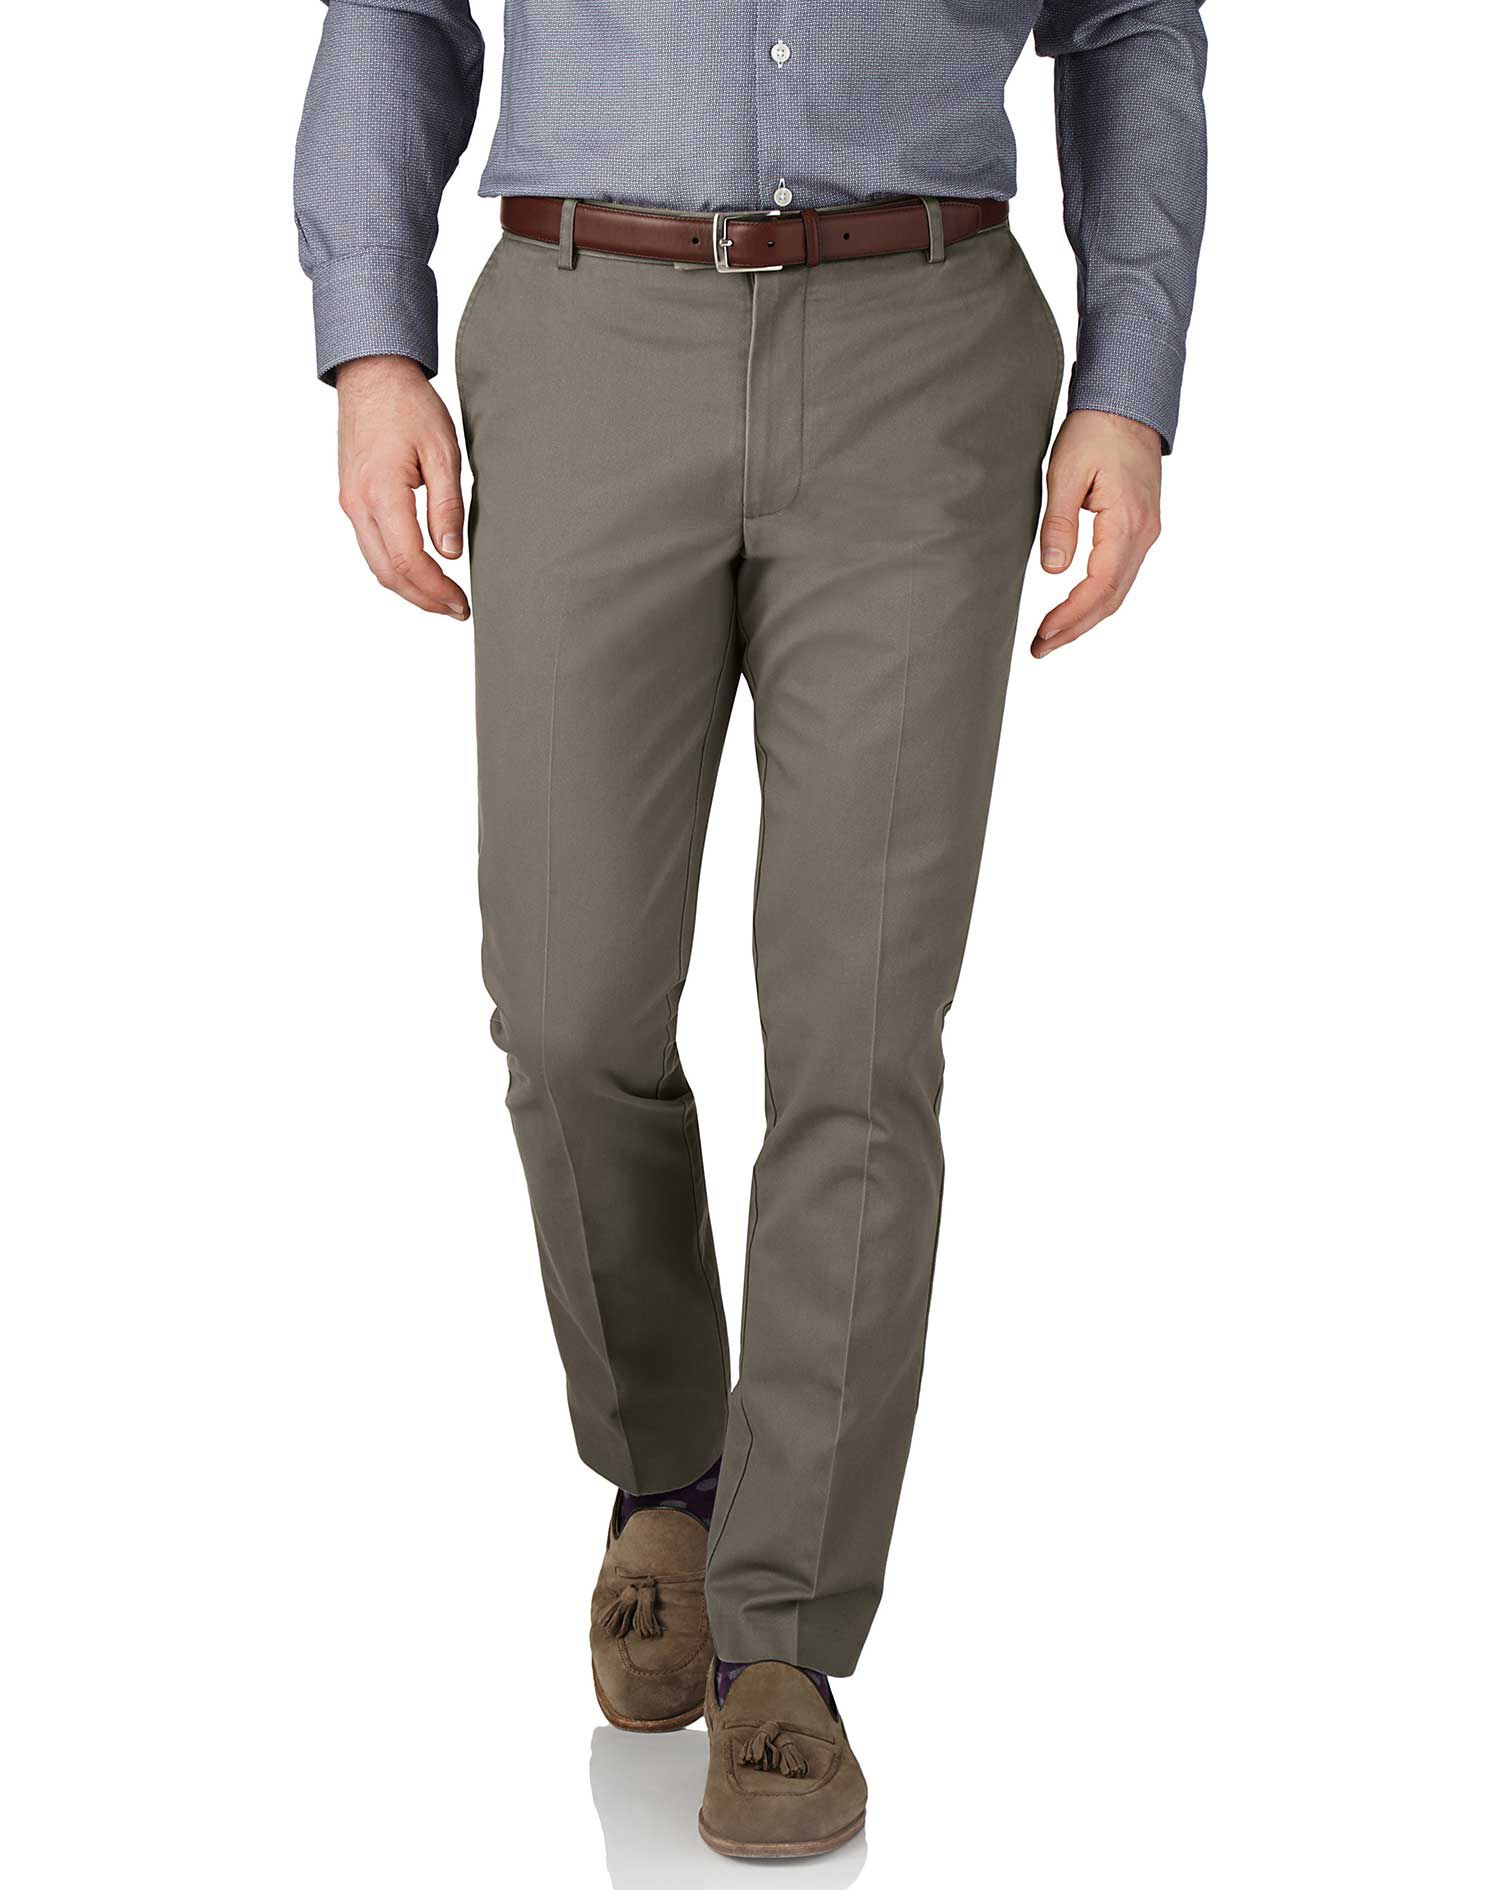 Olive Green Extra Slim Fit Flat Front Non-Iron Cotton Chino Trousers Size W38 L34 by Charles Tyrwhit